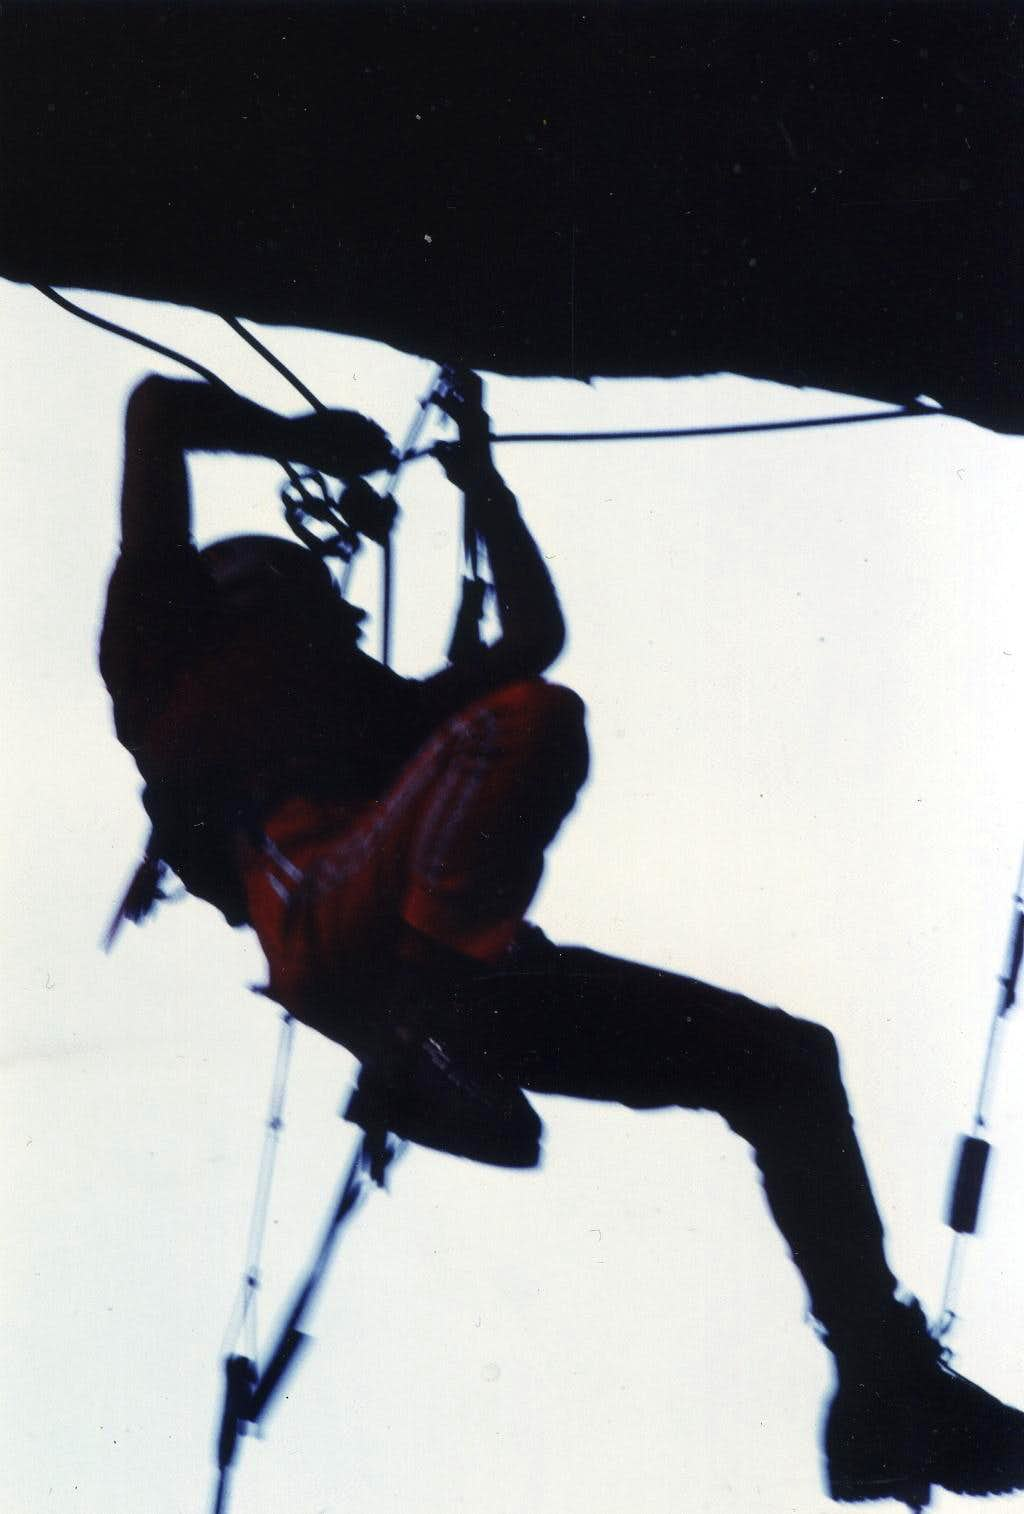 Climbing/3 Great Cliff by an only & sole old rope 1978